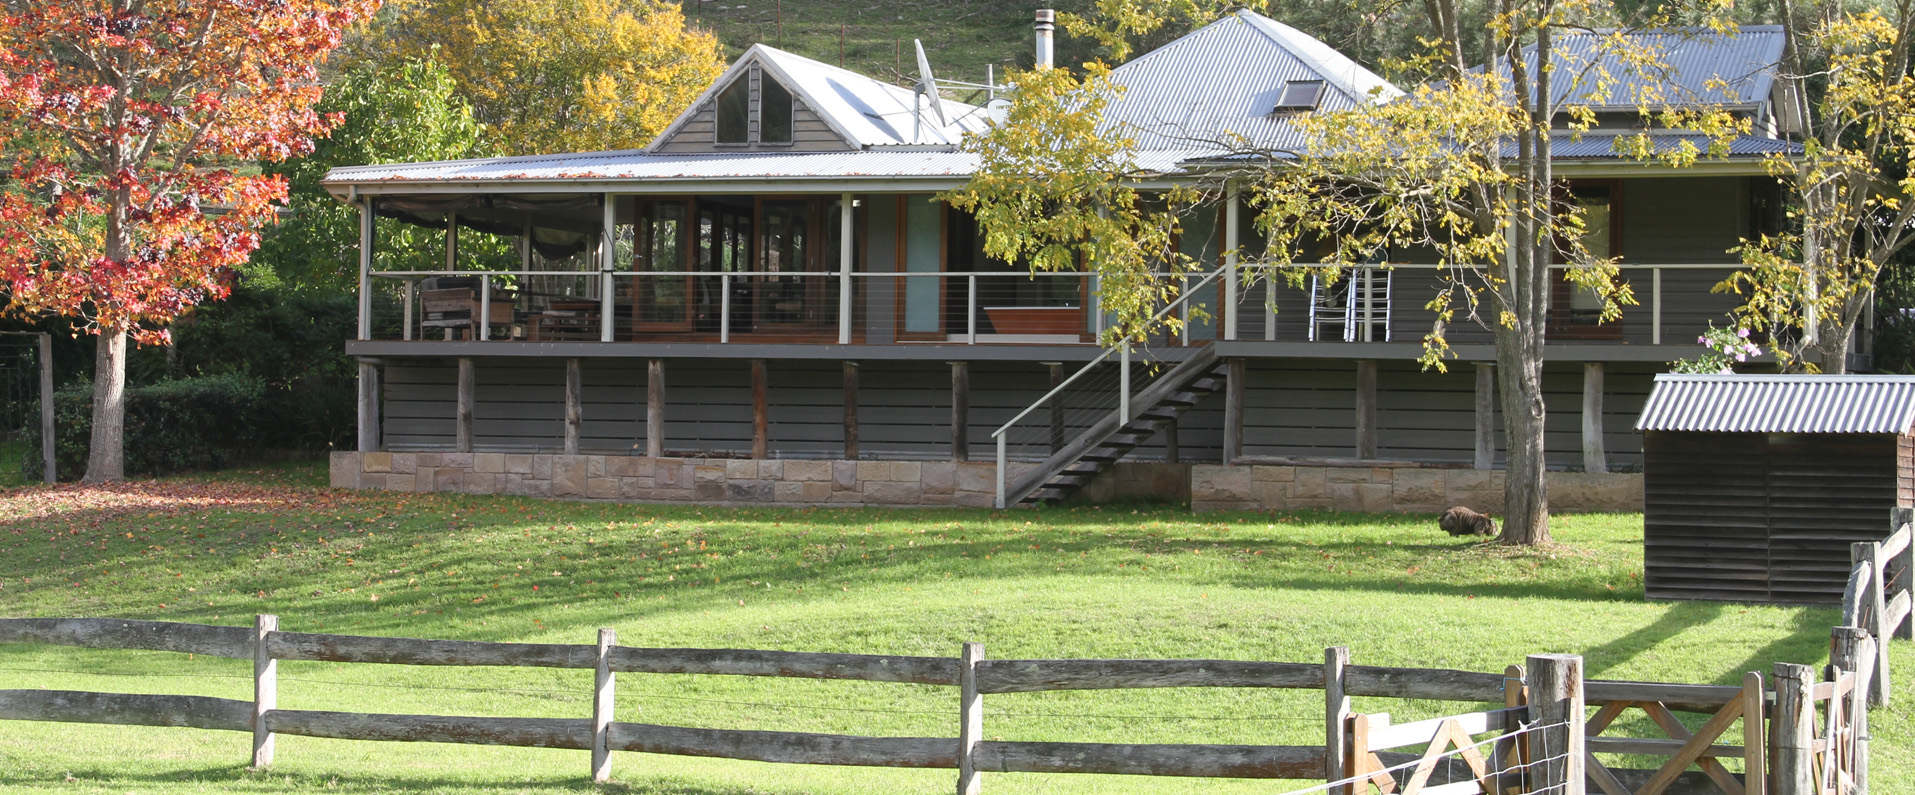 Wollombi Homestead